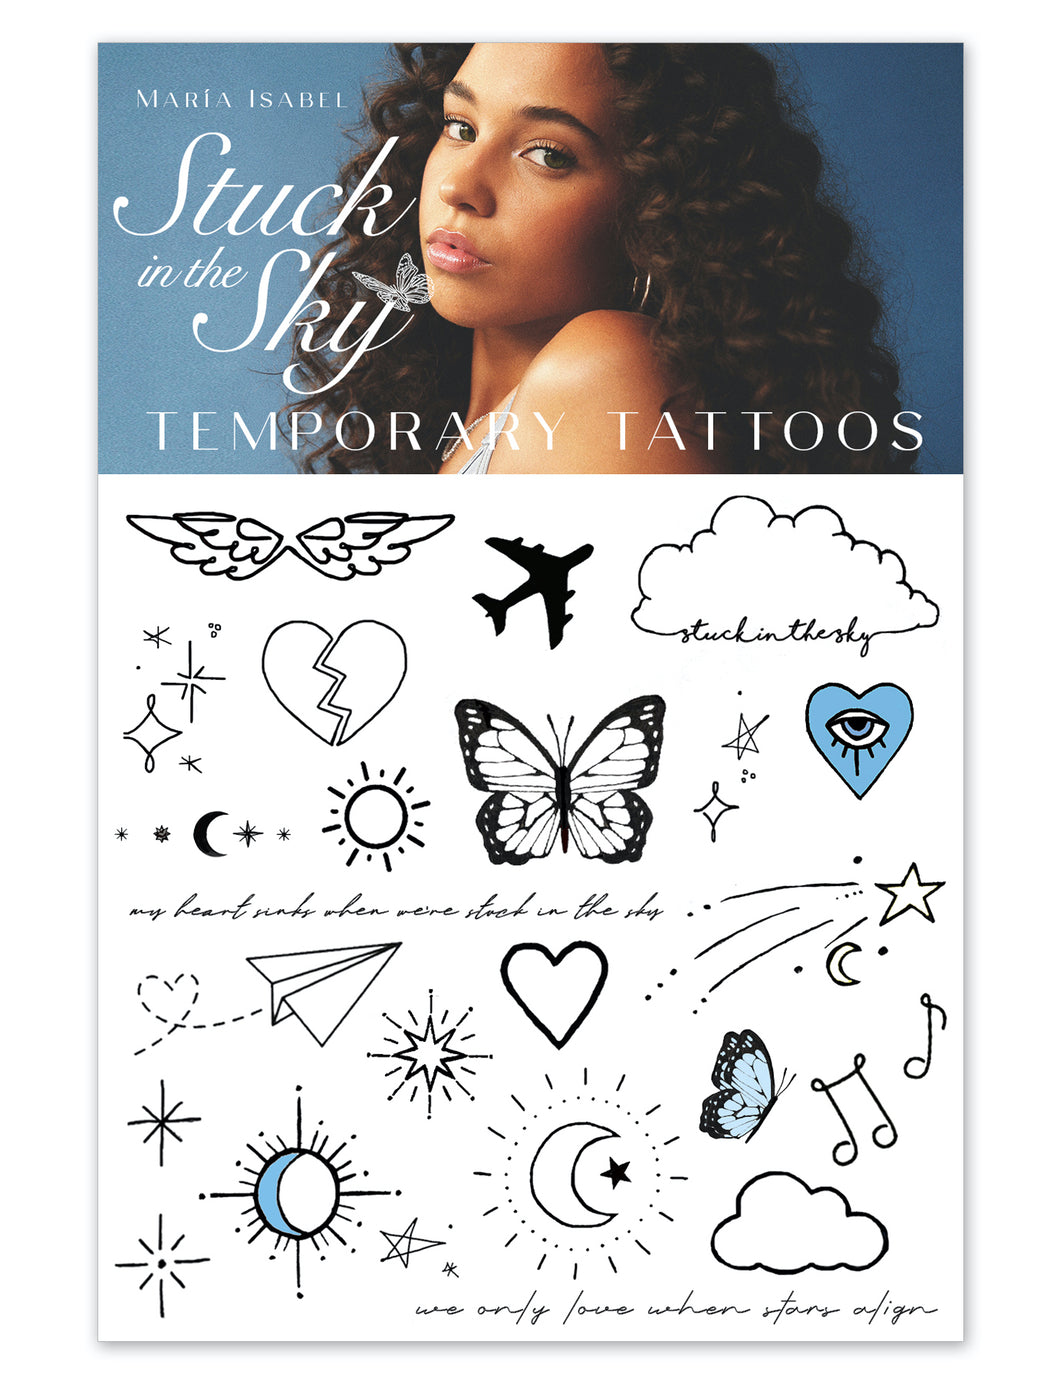 Stuck in the Sky Temporary Tattoos